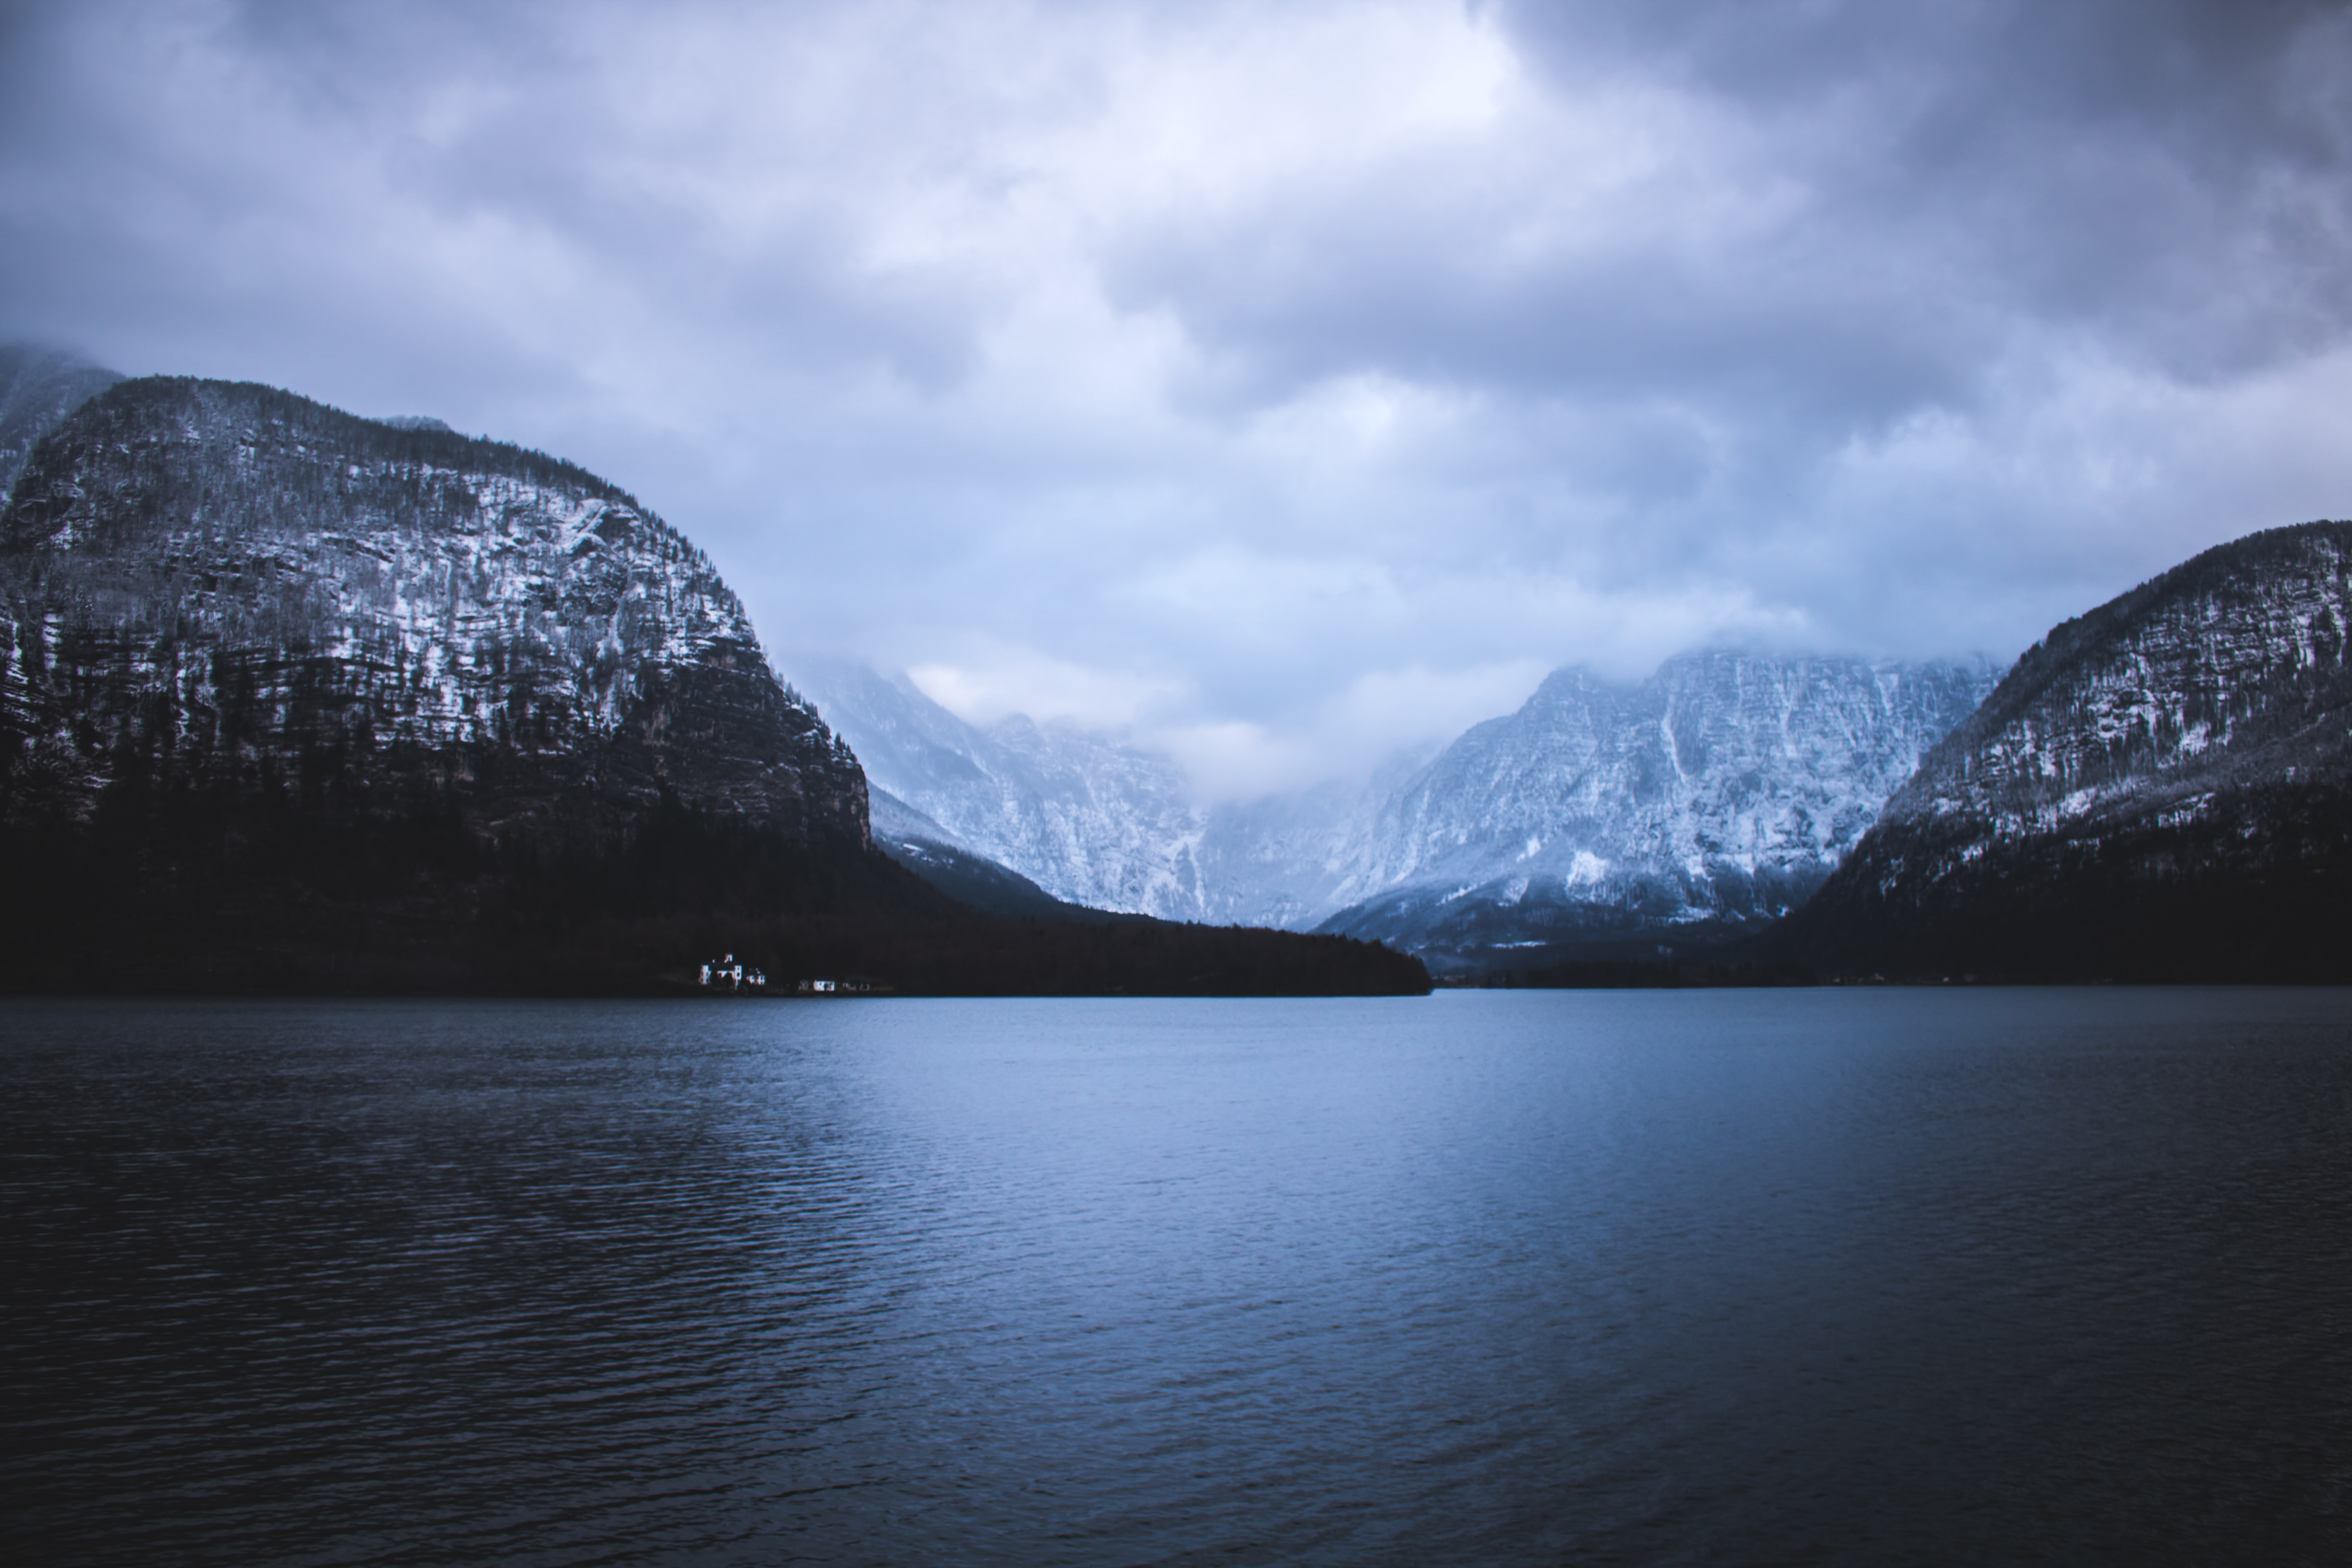 landscape photography of mountains near body of water under cloudy sky